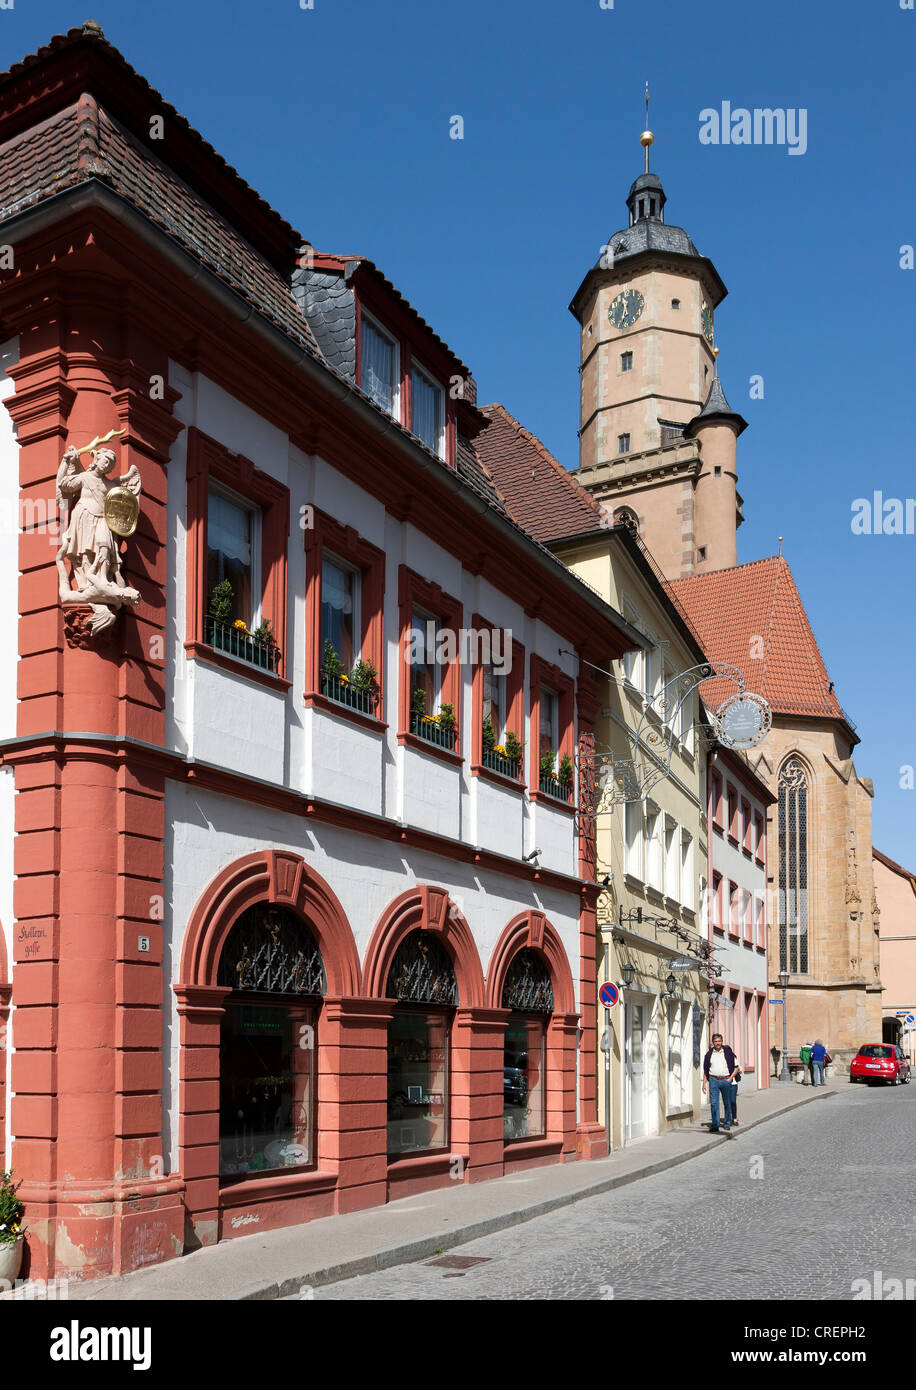 Amtskellerei building, Volkach, Landkreis Kitzingen county, Lower Franconia, Bavaria, southern Germany, Germany, - Stock Image